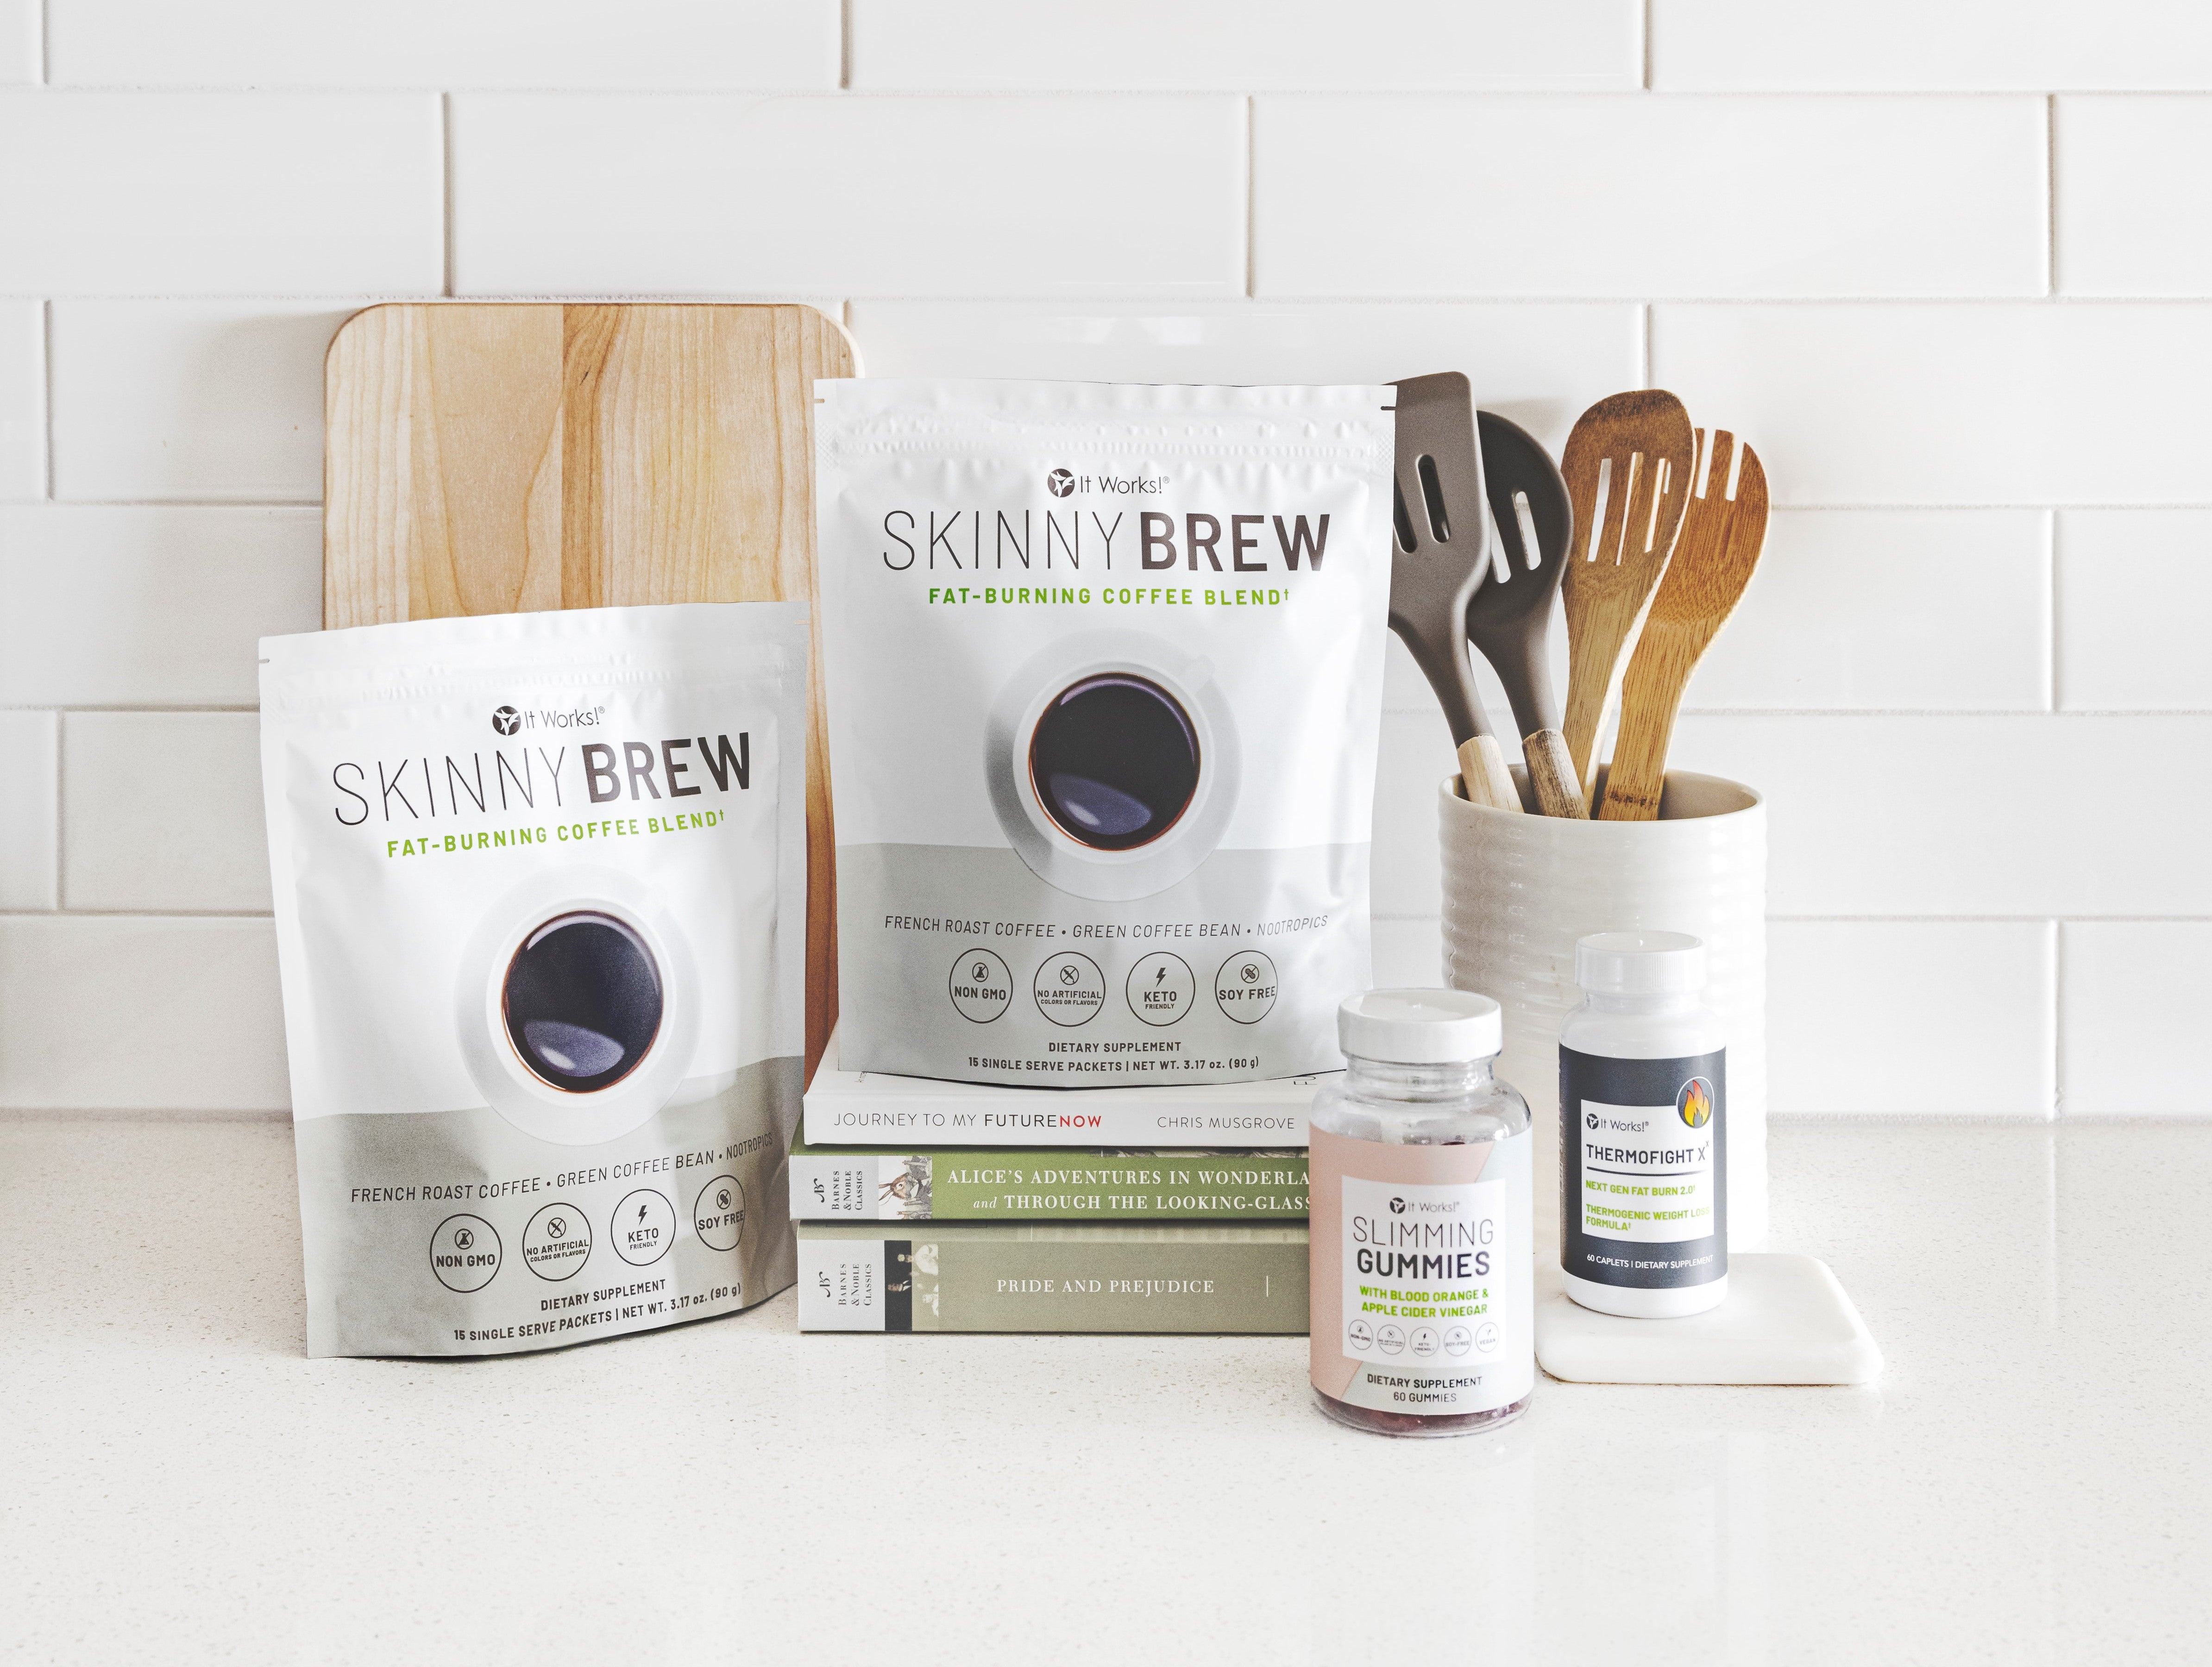 Skinny Brew, Slimming Gummies, Thermofight Xx on counter